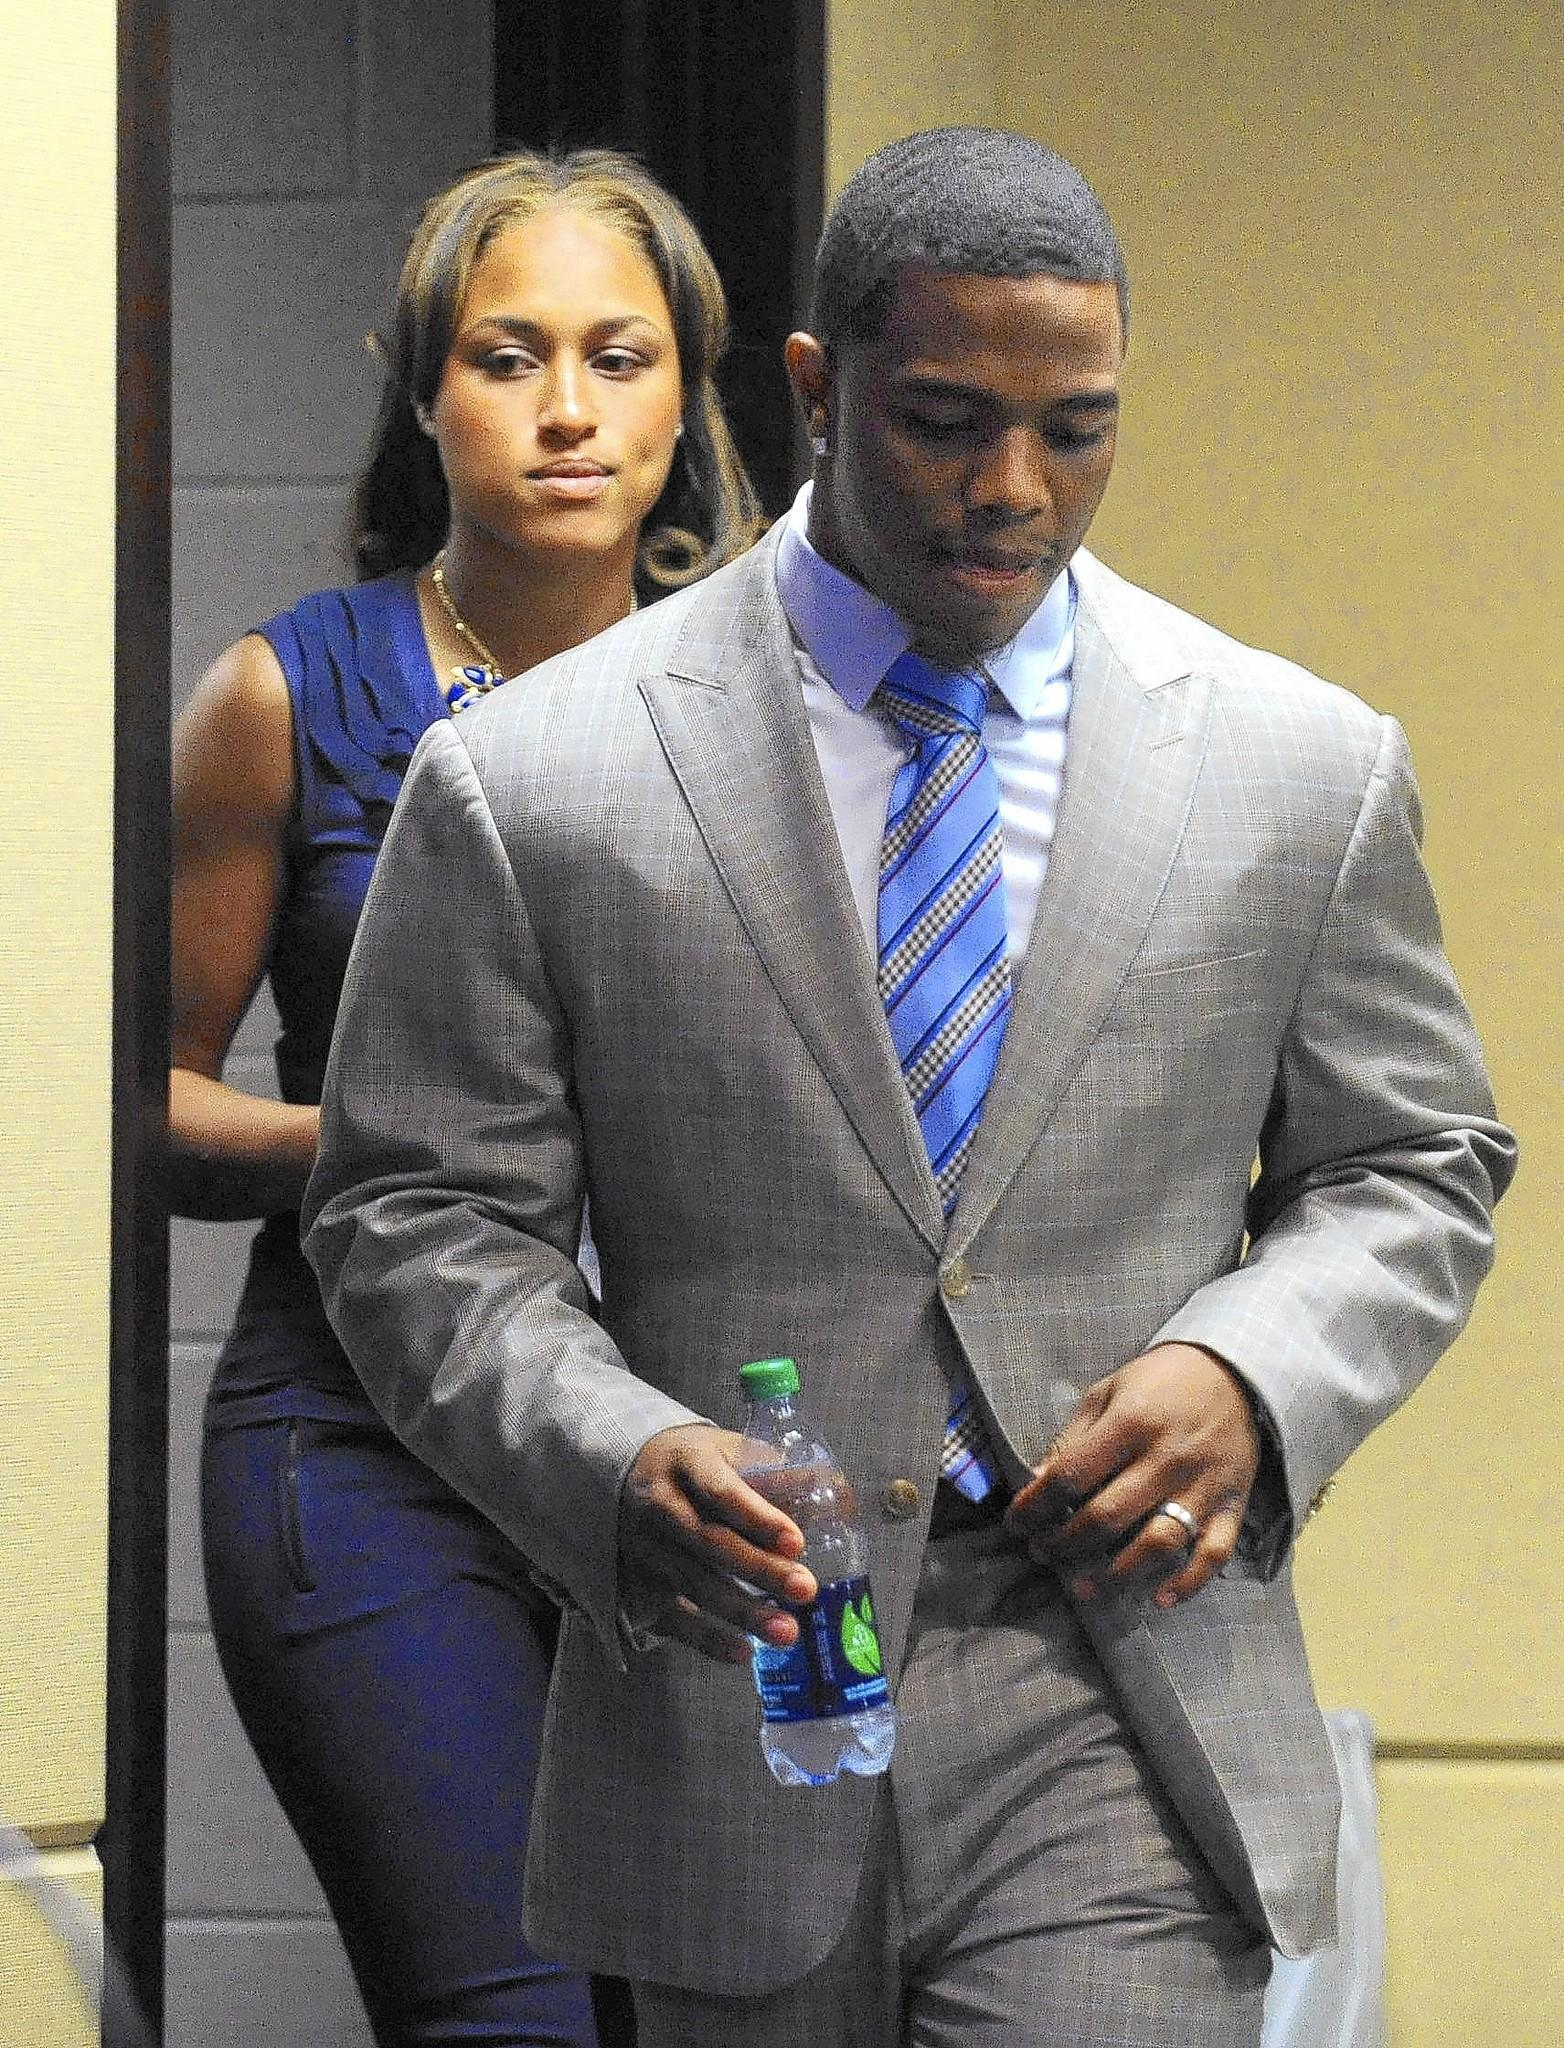 Janay Rice and her husband, then-Ravens running back Ray Rice, at a news conference in May at the Under Armour Performance Center.